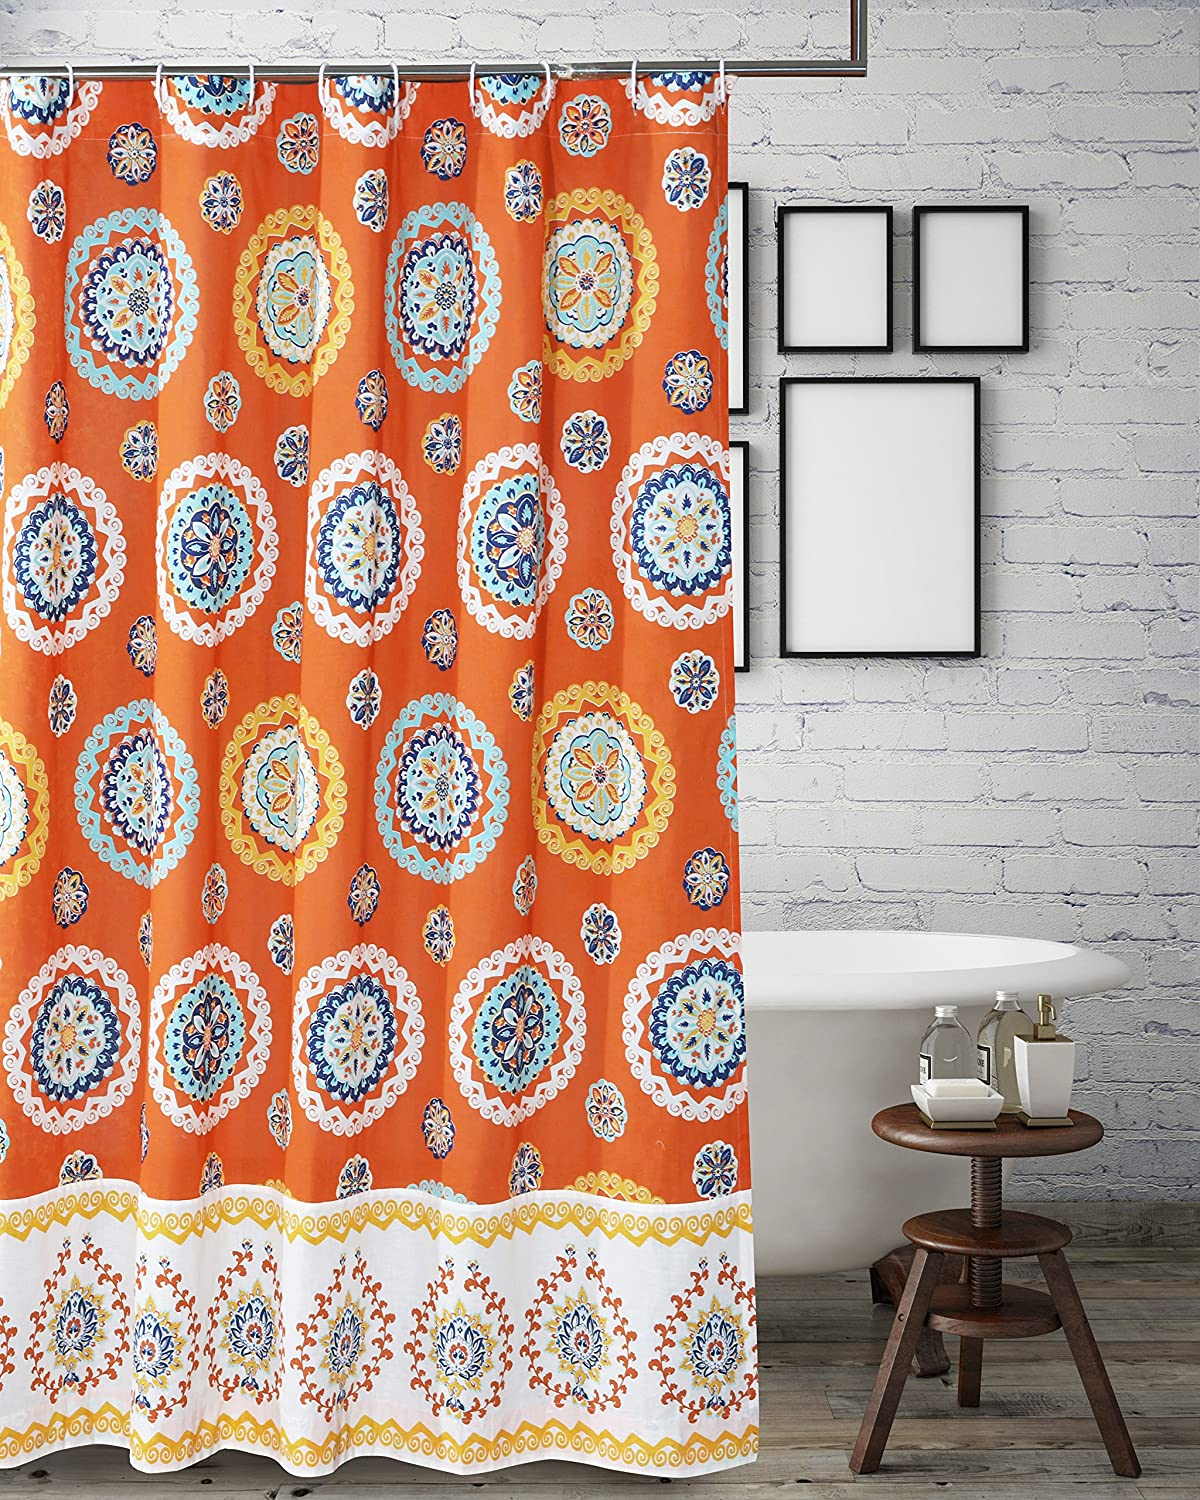 Barefoot Bungalow Rosario Shower Curtain One Size Tangerine Greenland Home Fashions GL-1712BSHW